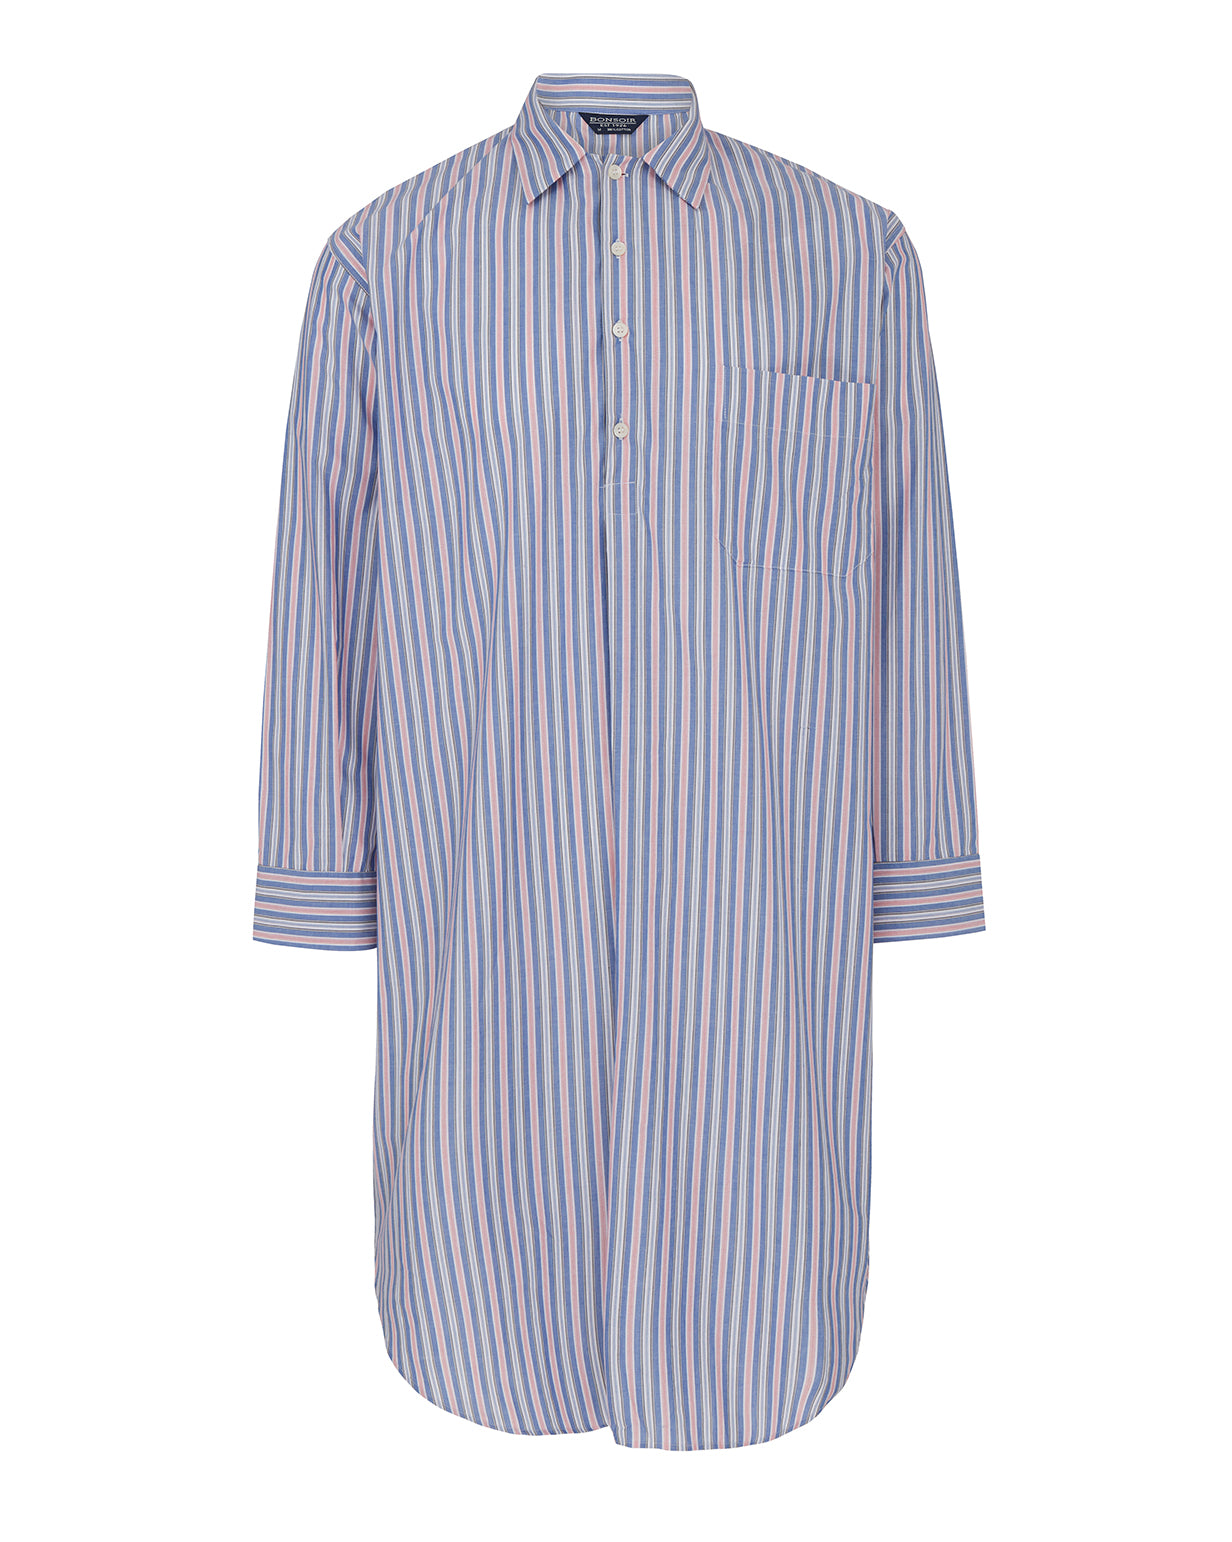 Men's Classic Cotton Nightshirt - A274